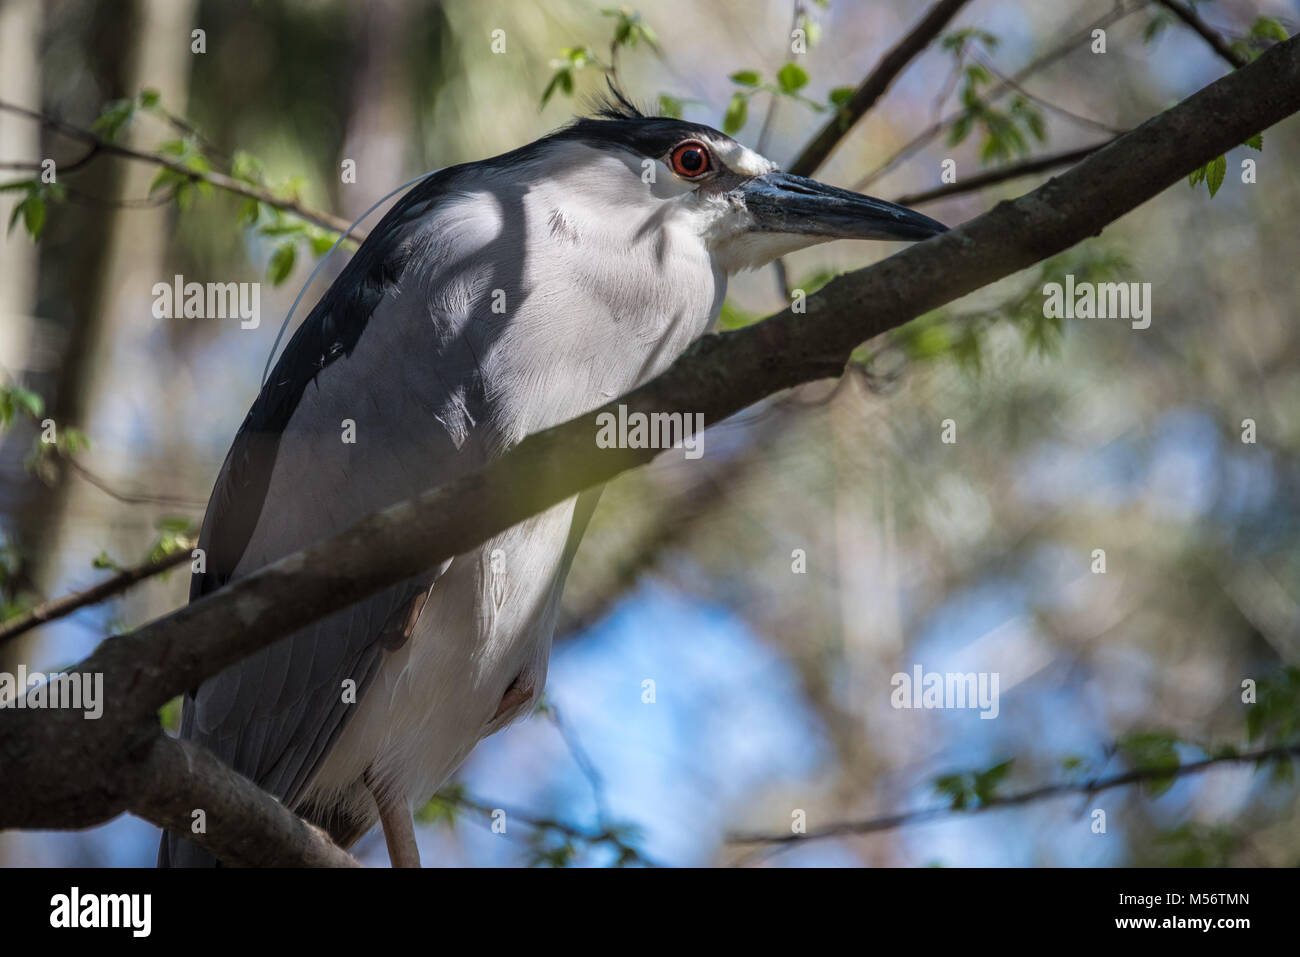 Black-crowned night heron (Nycticorax nycticorax) perched in a tree at Homosassa Springs Wildlife State Park in - Stock Image